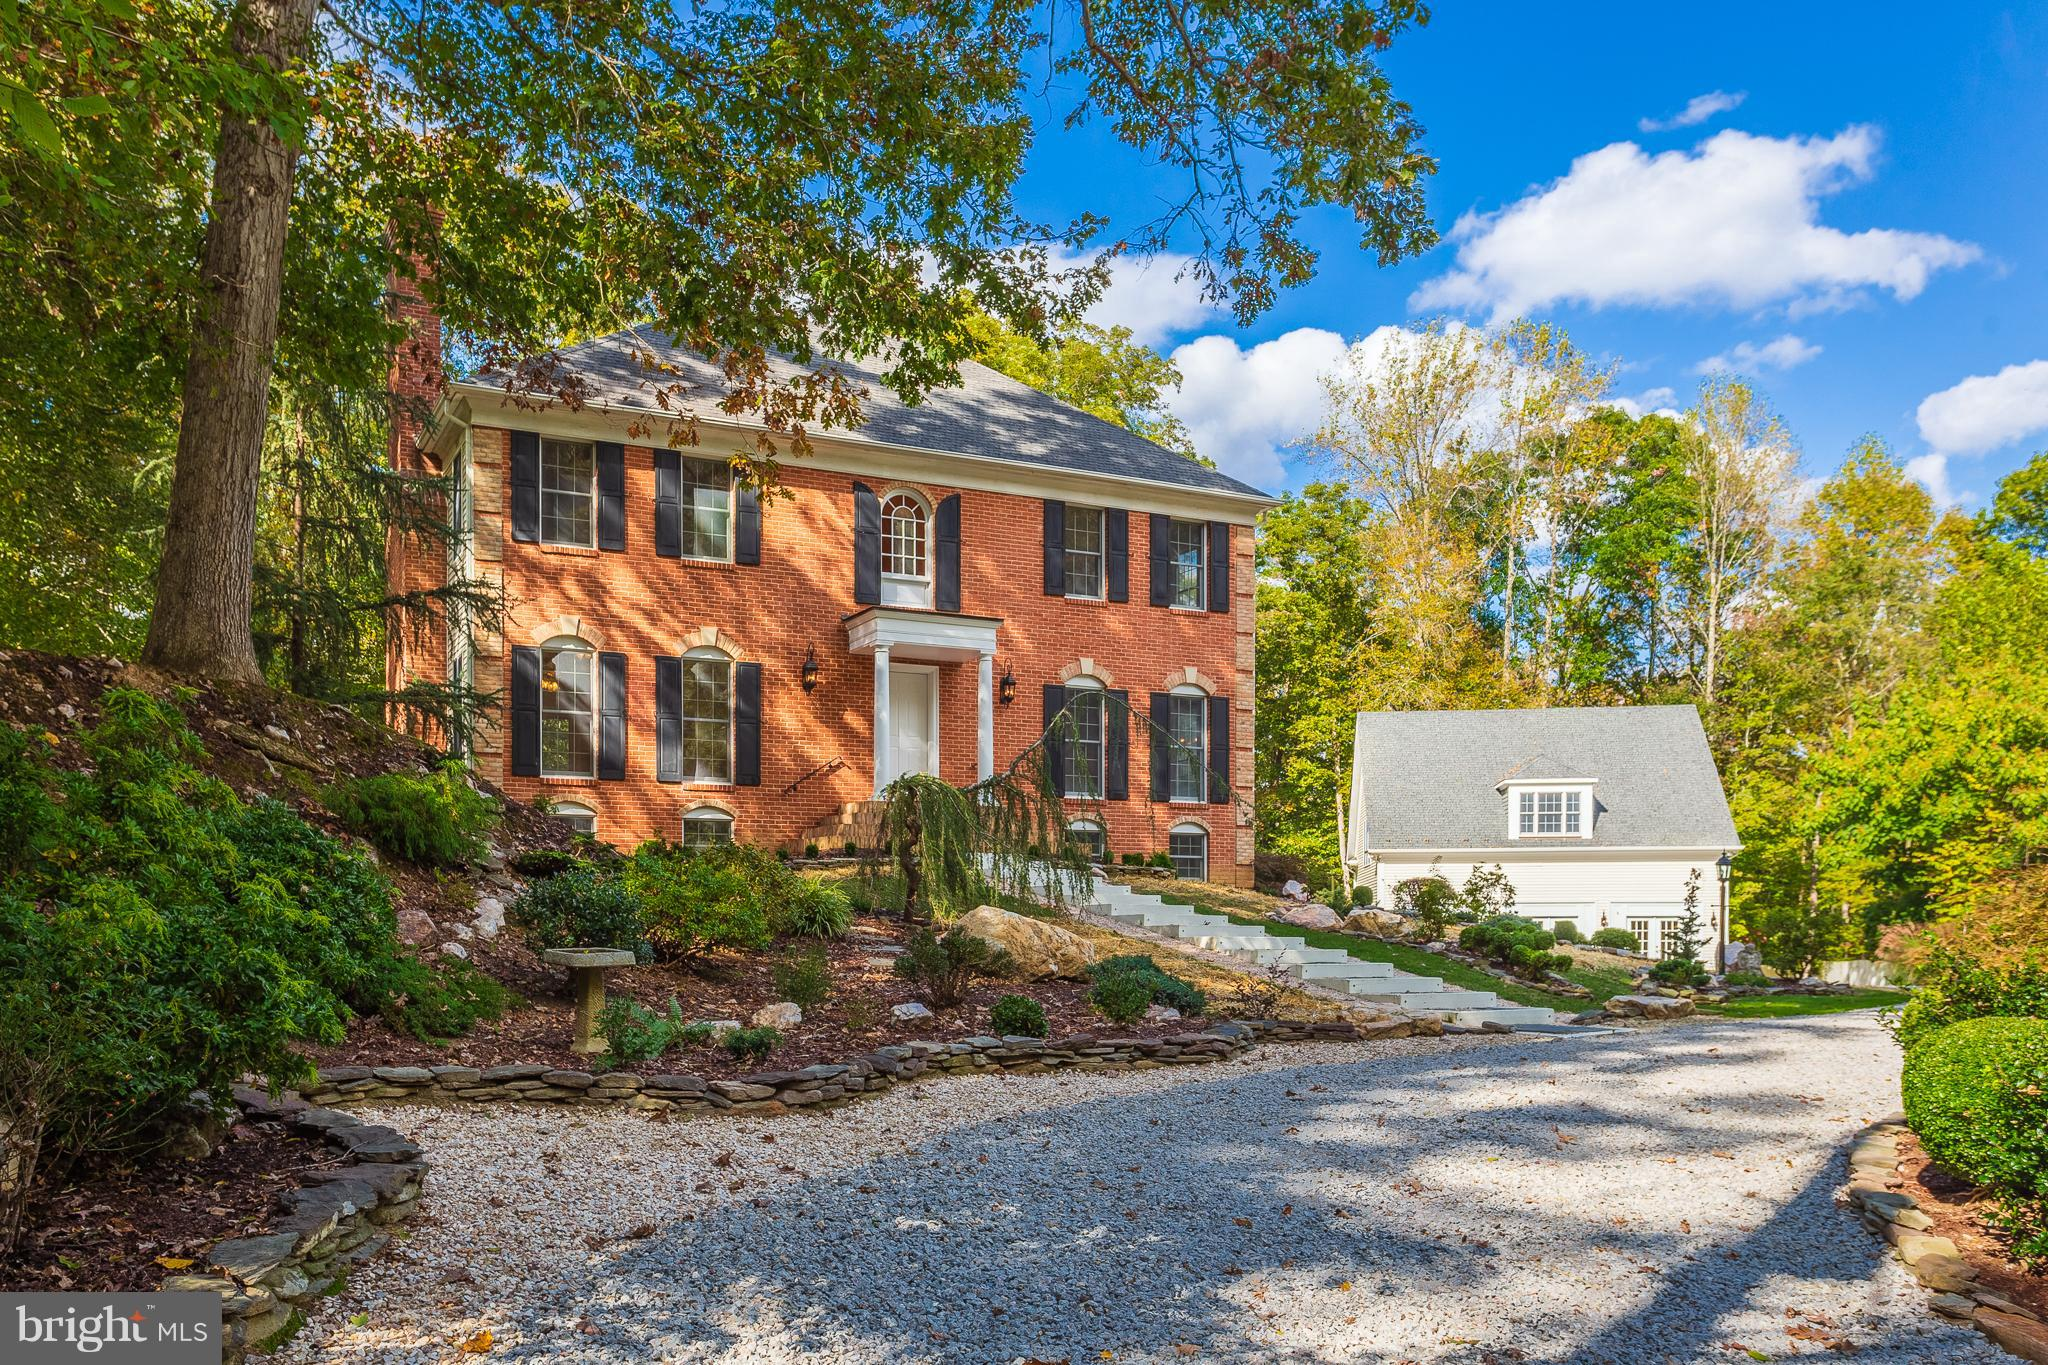 Custom Williamsburg Colonial w/seasonal wooded/water views, attached Garage & Detached Guest House! Open floor plan w/loads of light! Gorgeous hdwd flrs, 3-FPs (MBR,FR,LL), Granite Kitchen & FBAs, custom moldings, Finished W/O LL! Guest House w/GreatRm, 2FBAs, Kitchenette,BR5 & Laundry, hdwd flrs, hi ceilings! Deck & Shed! Main House (3264SF) & FULLY PERMITTED Guest House (1876SF)!